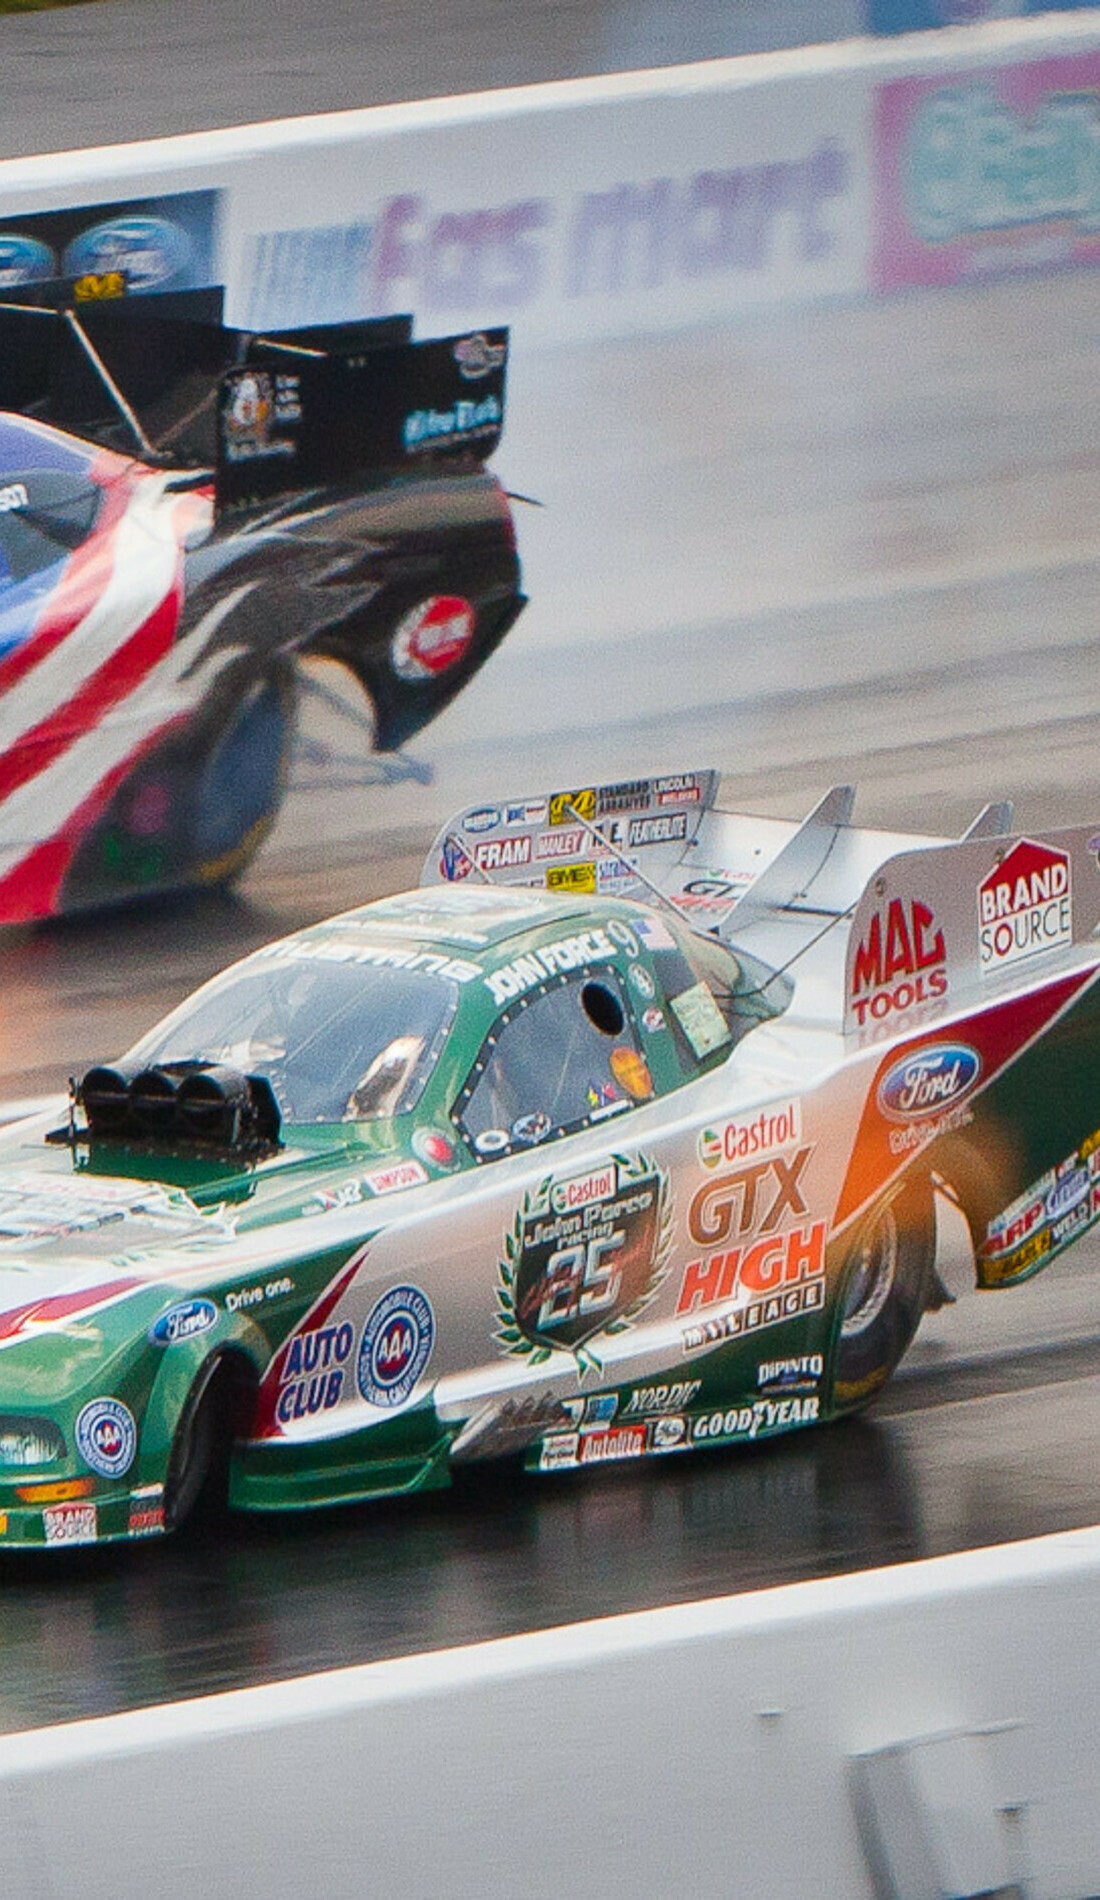 A NHRA Thunder Valley Nationals live event